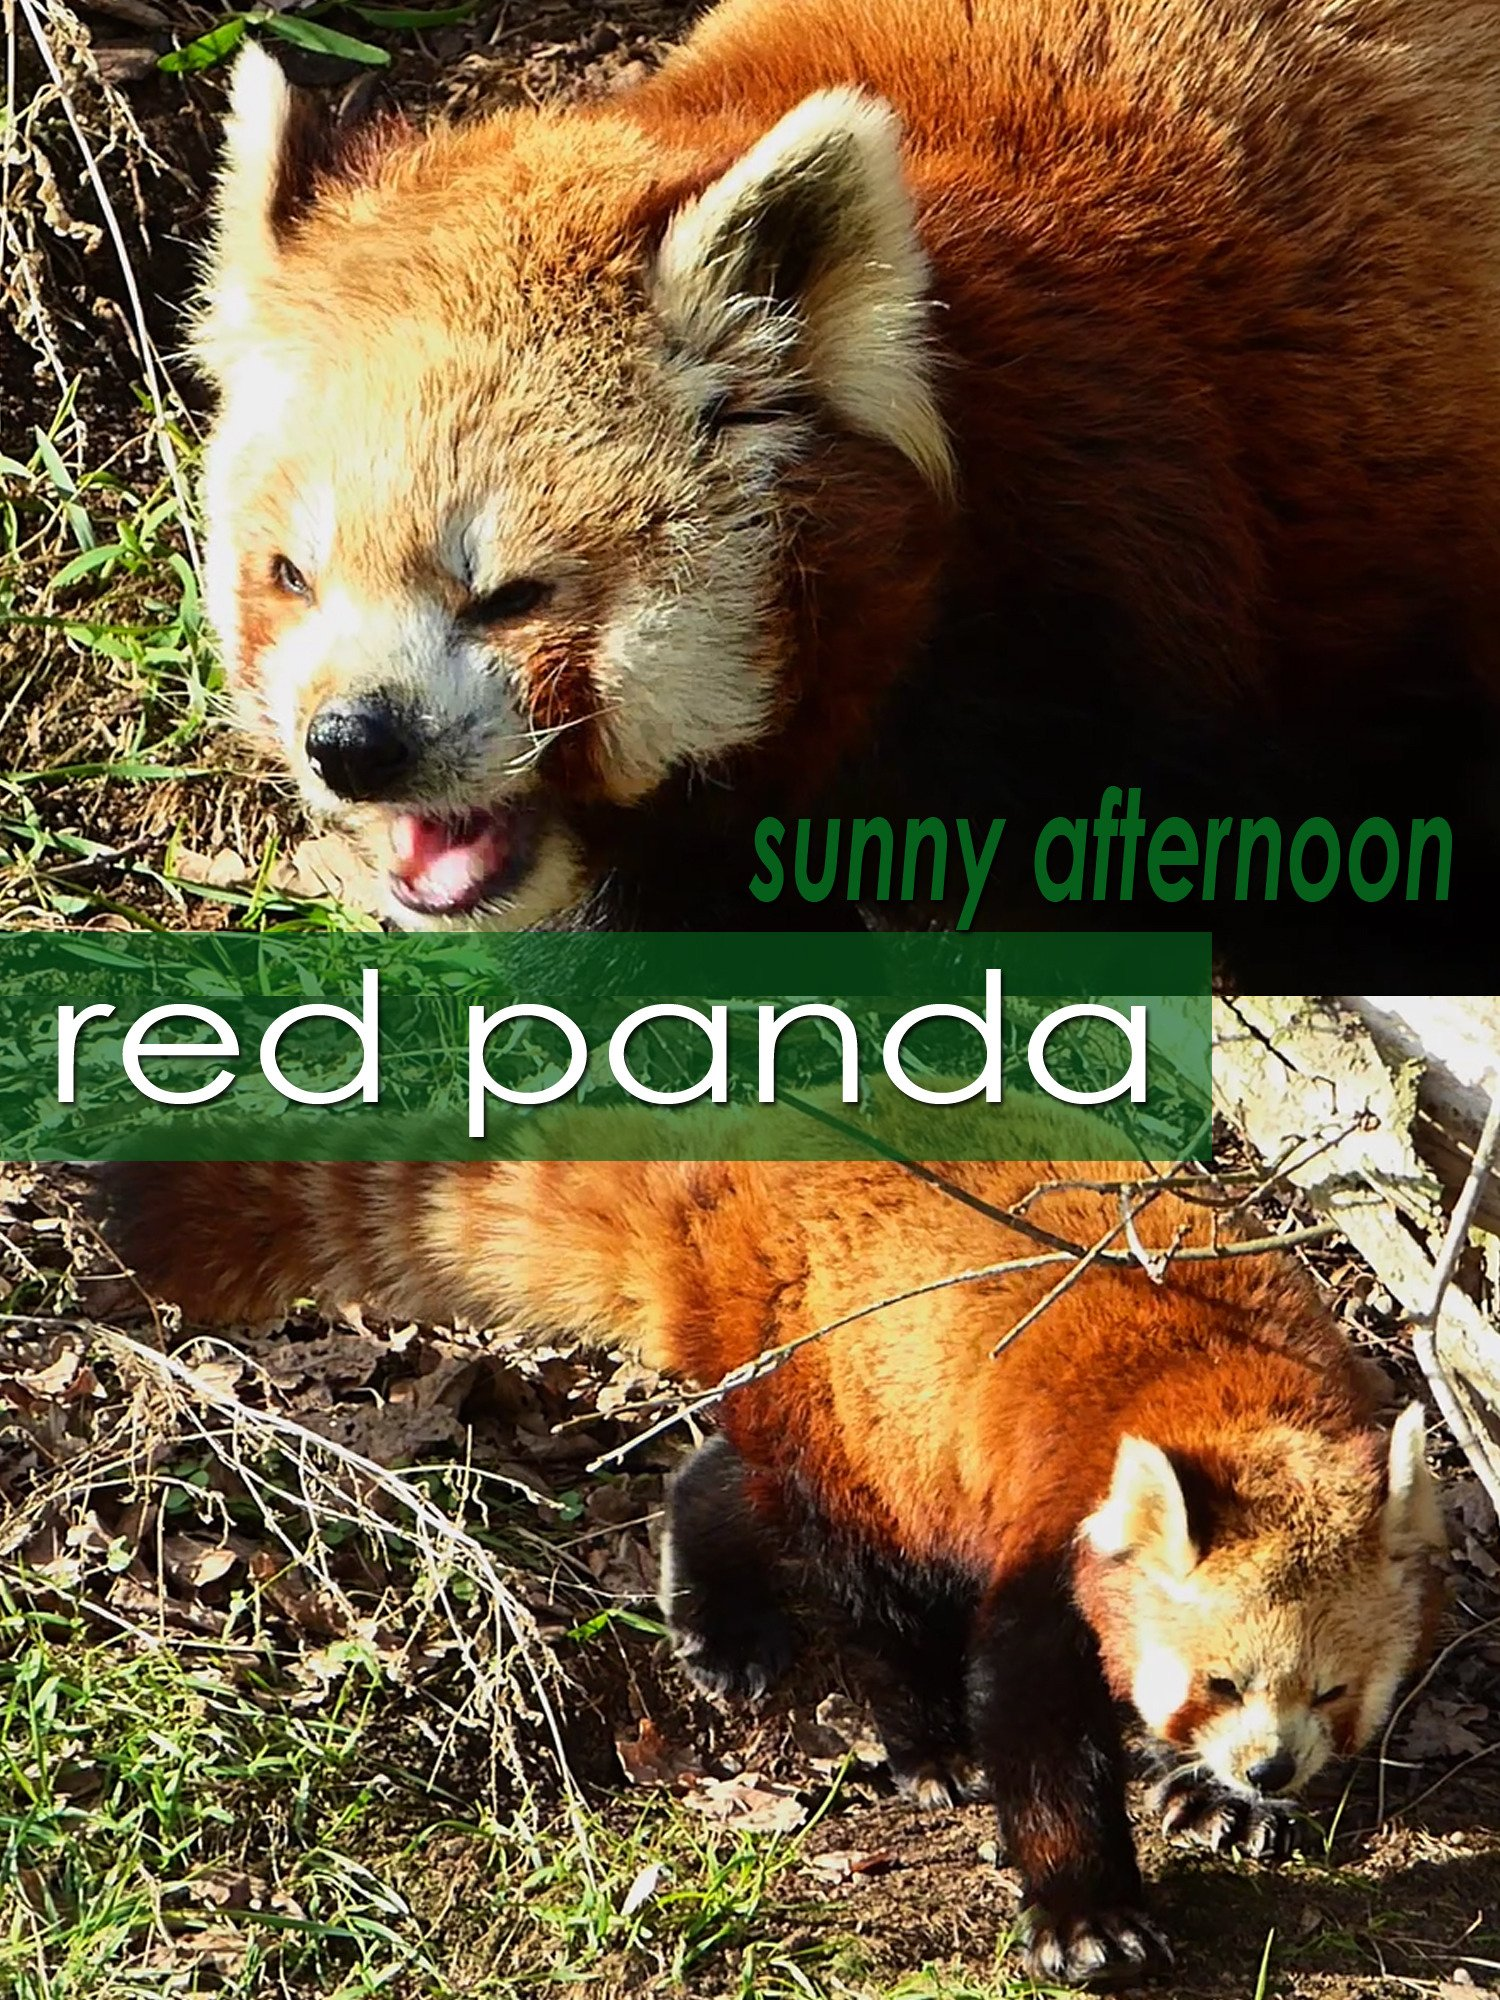 Red panda. Sunny afternoon on Amazon Prime Instant Video UK